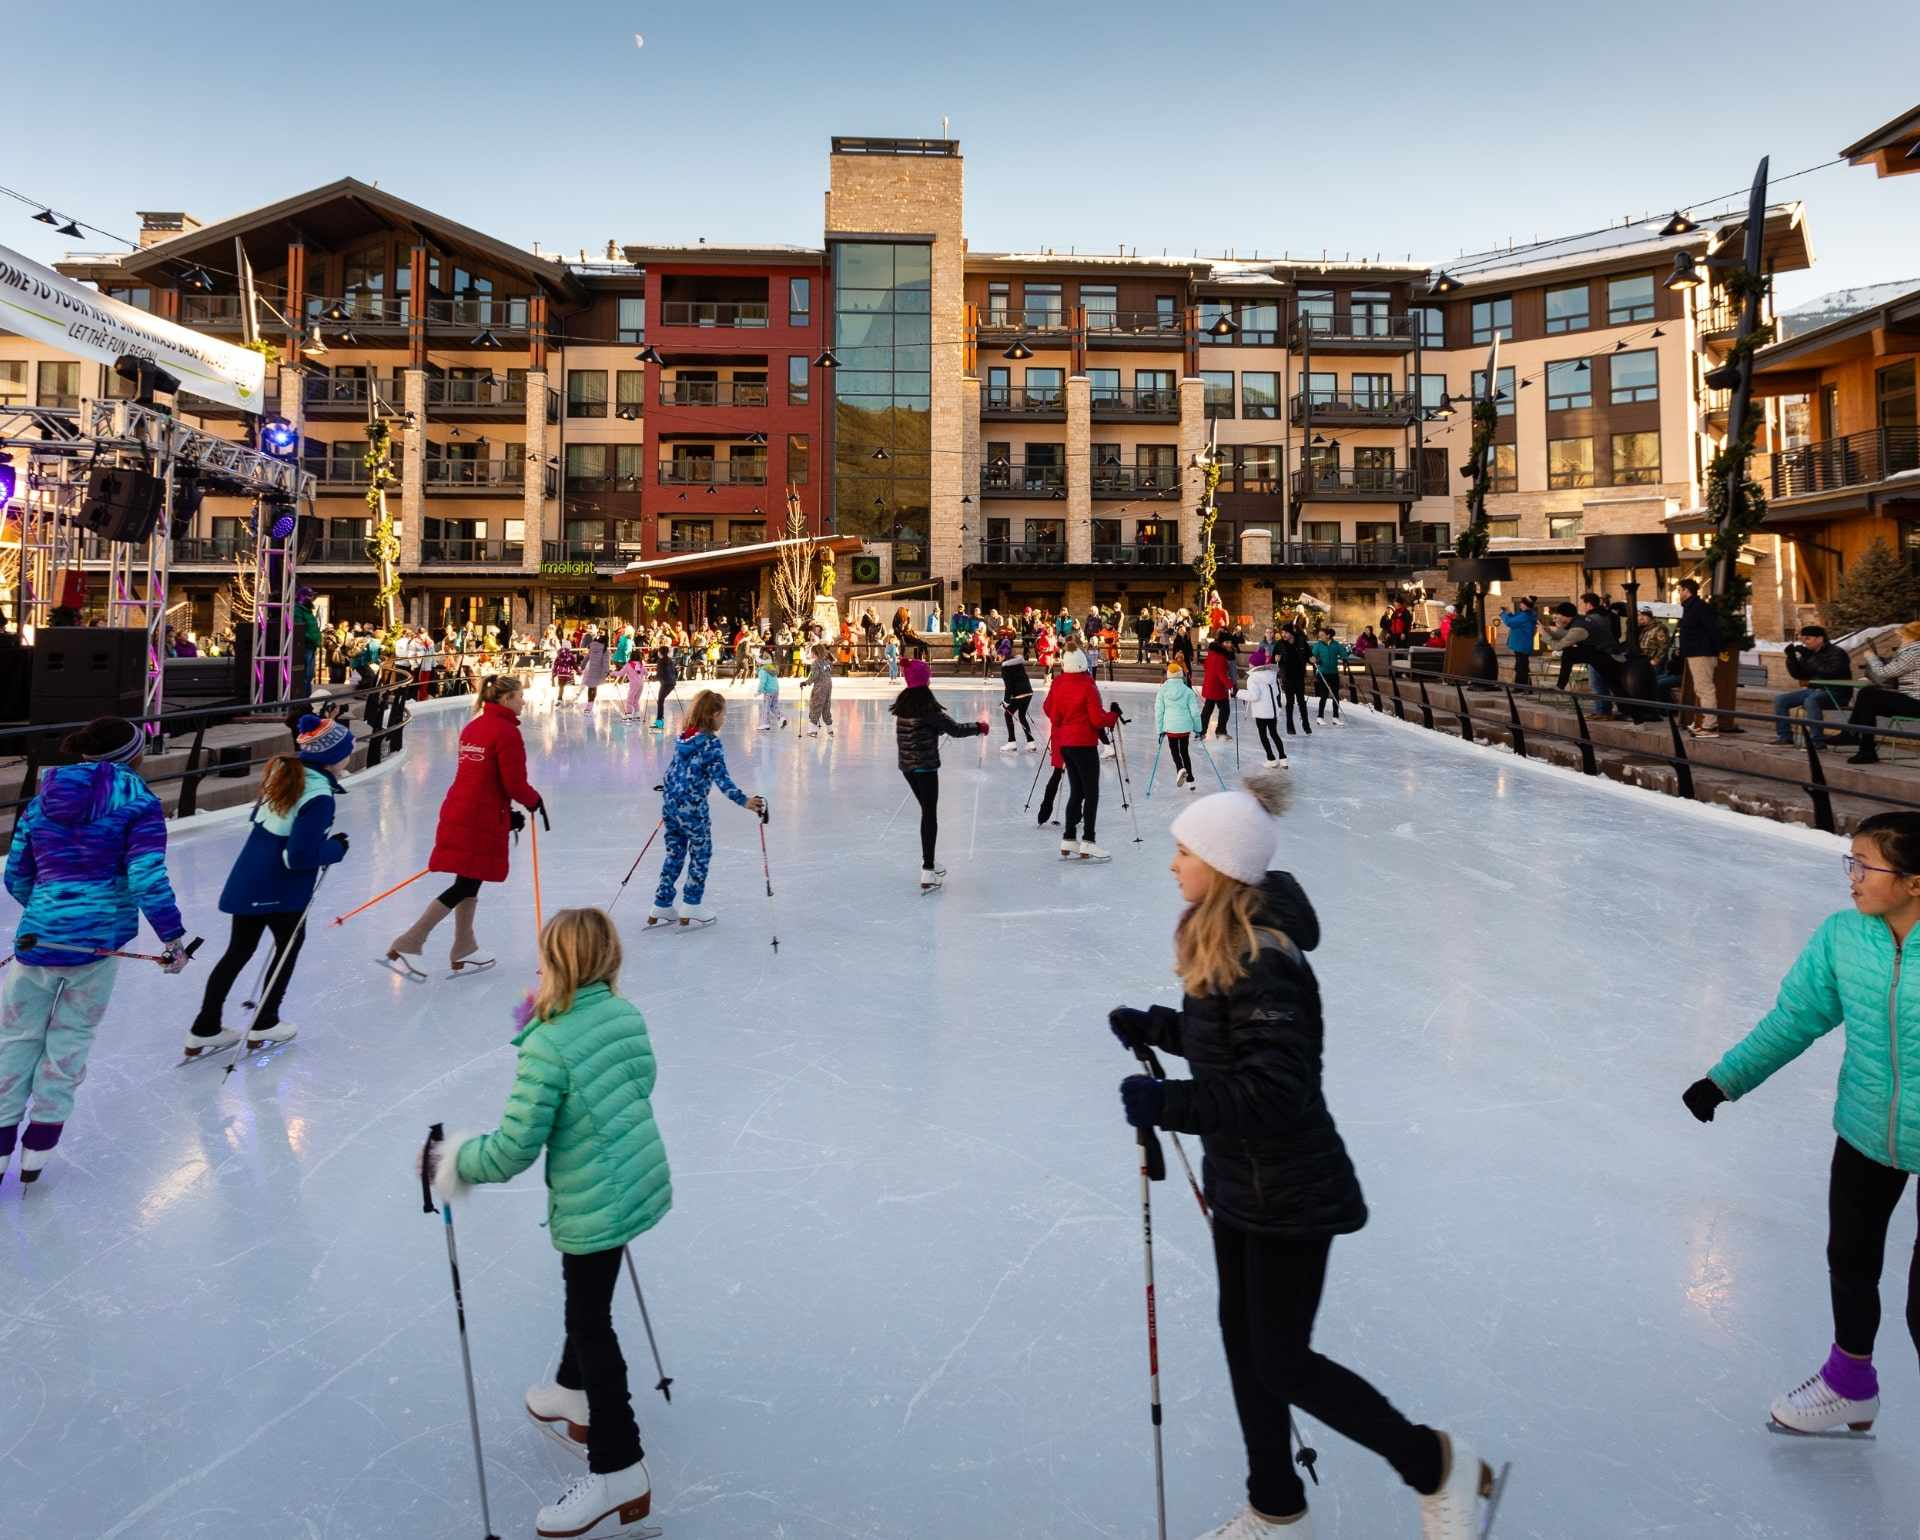 Ice Rink - Practice your figure eights at the ice rink located in the plaza with convenient, complimentary skate rentals.